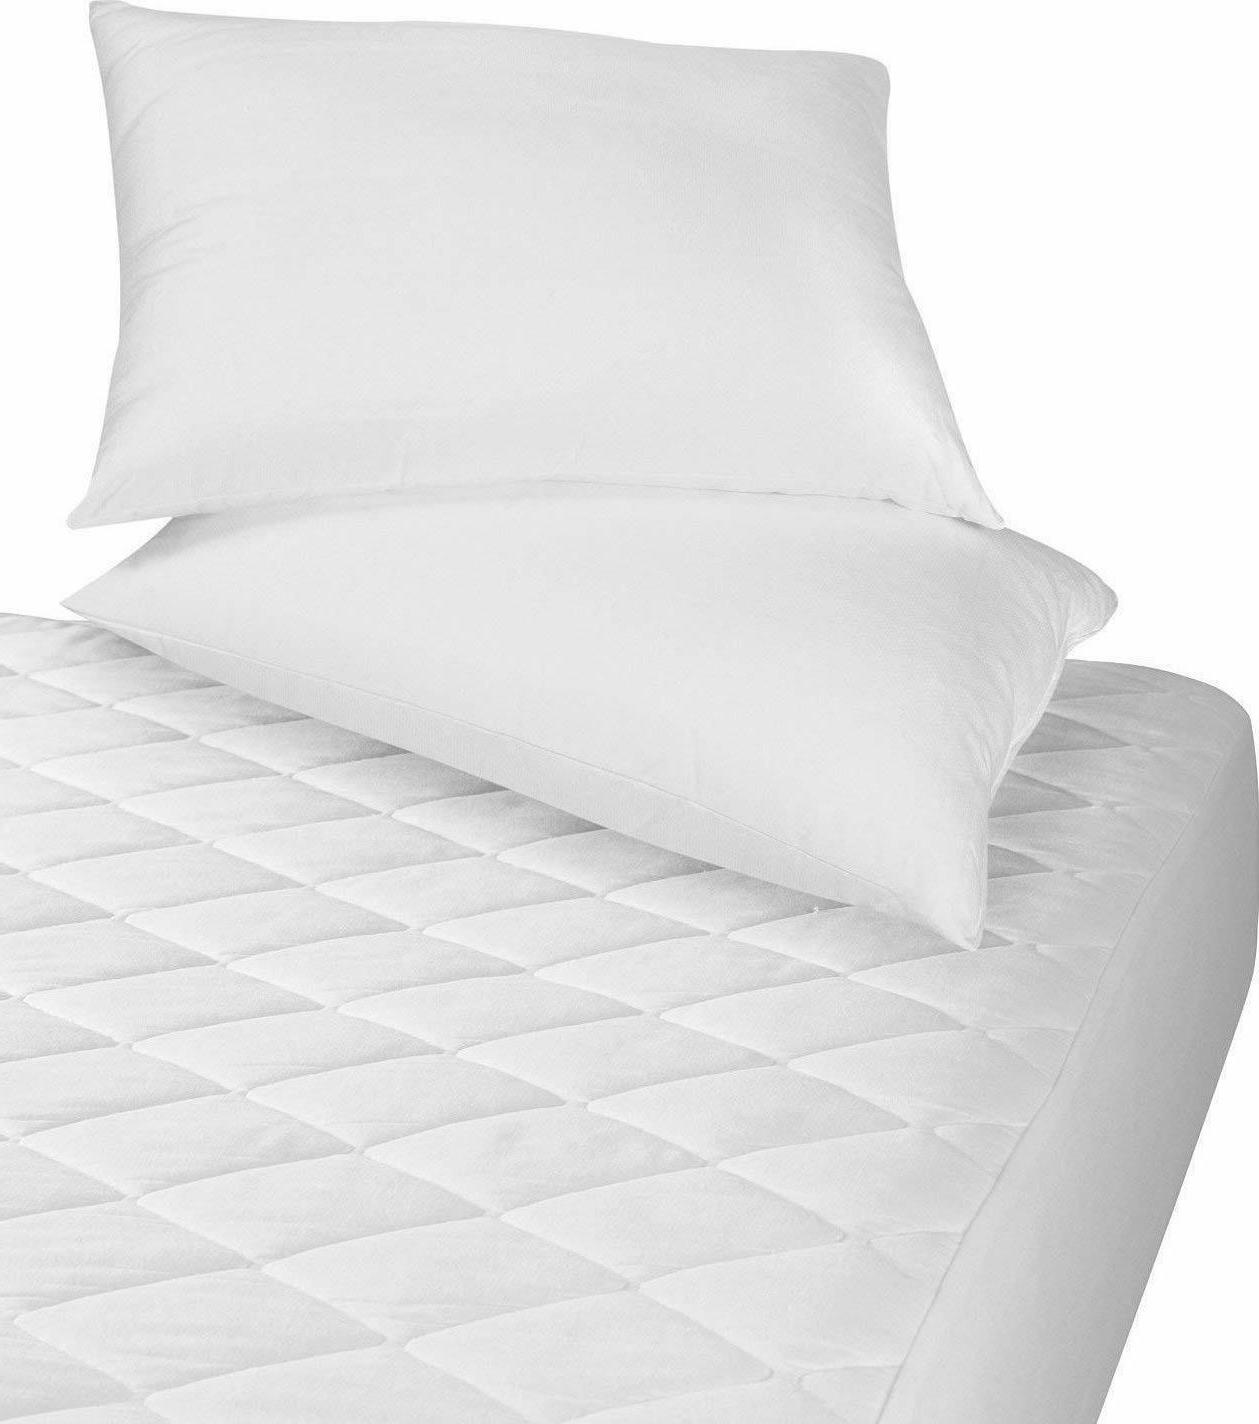 Utopia Bedding Quilted Mattress Topper Stretches Deep